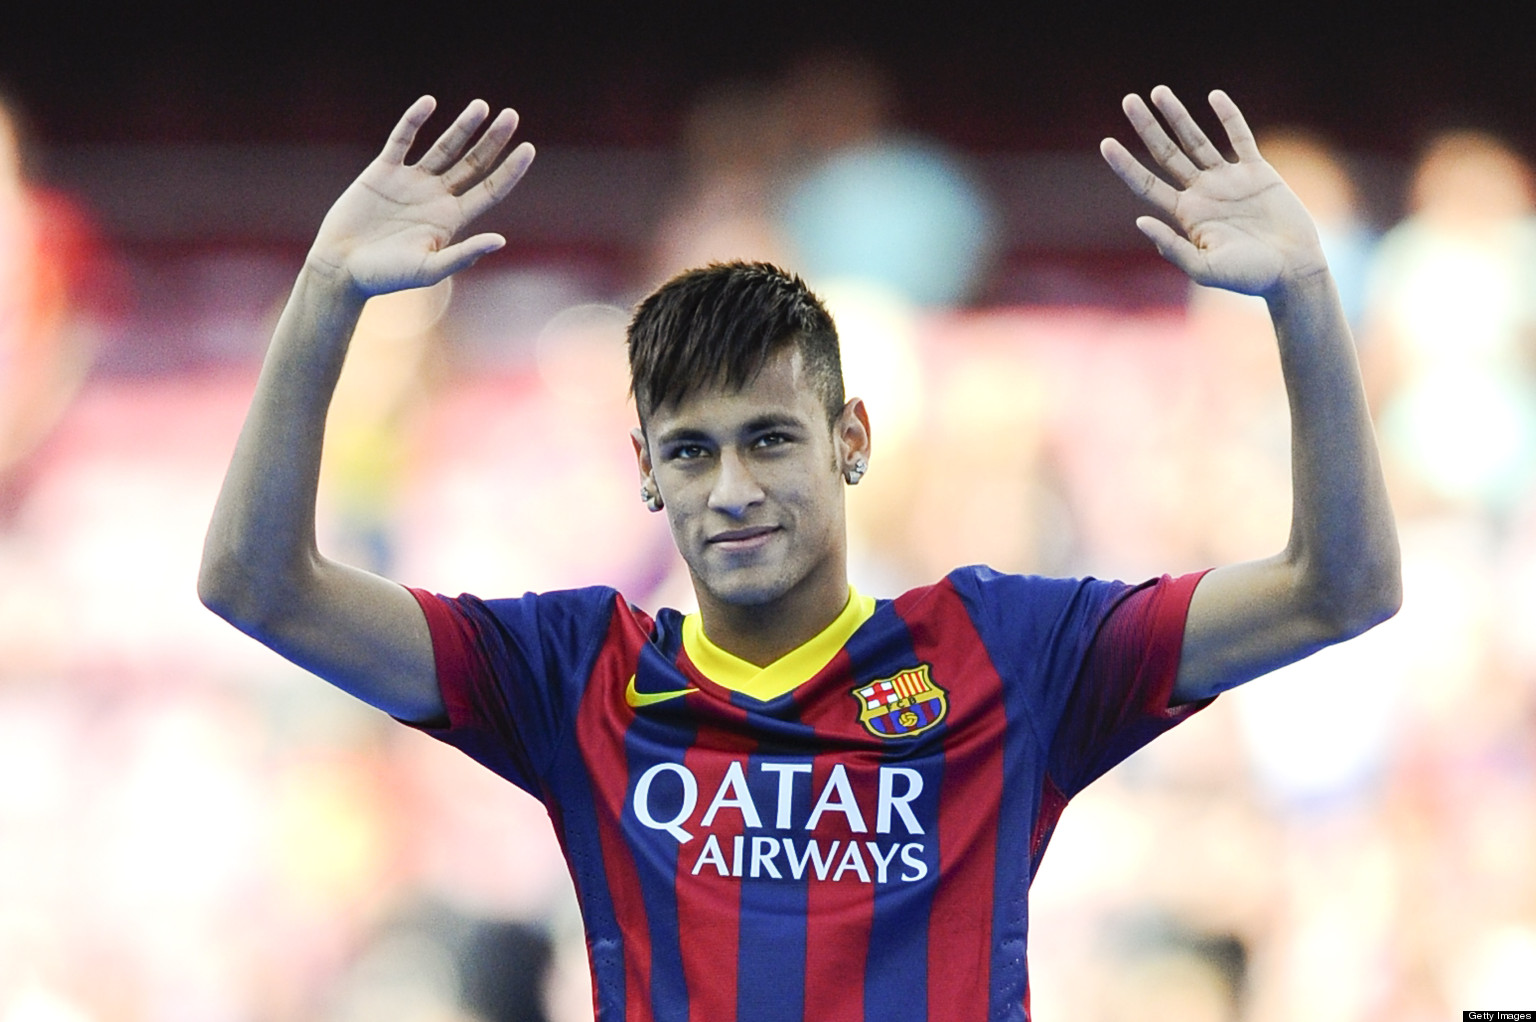 [VIDEO] Simply Neymar collection of 5 Videos